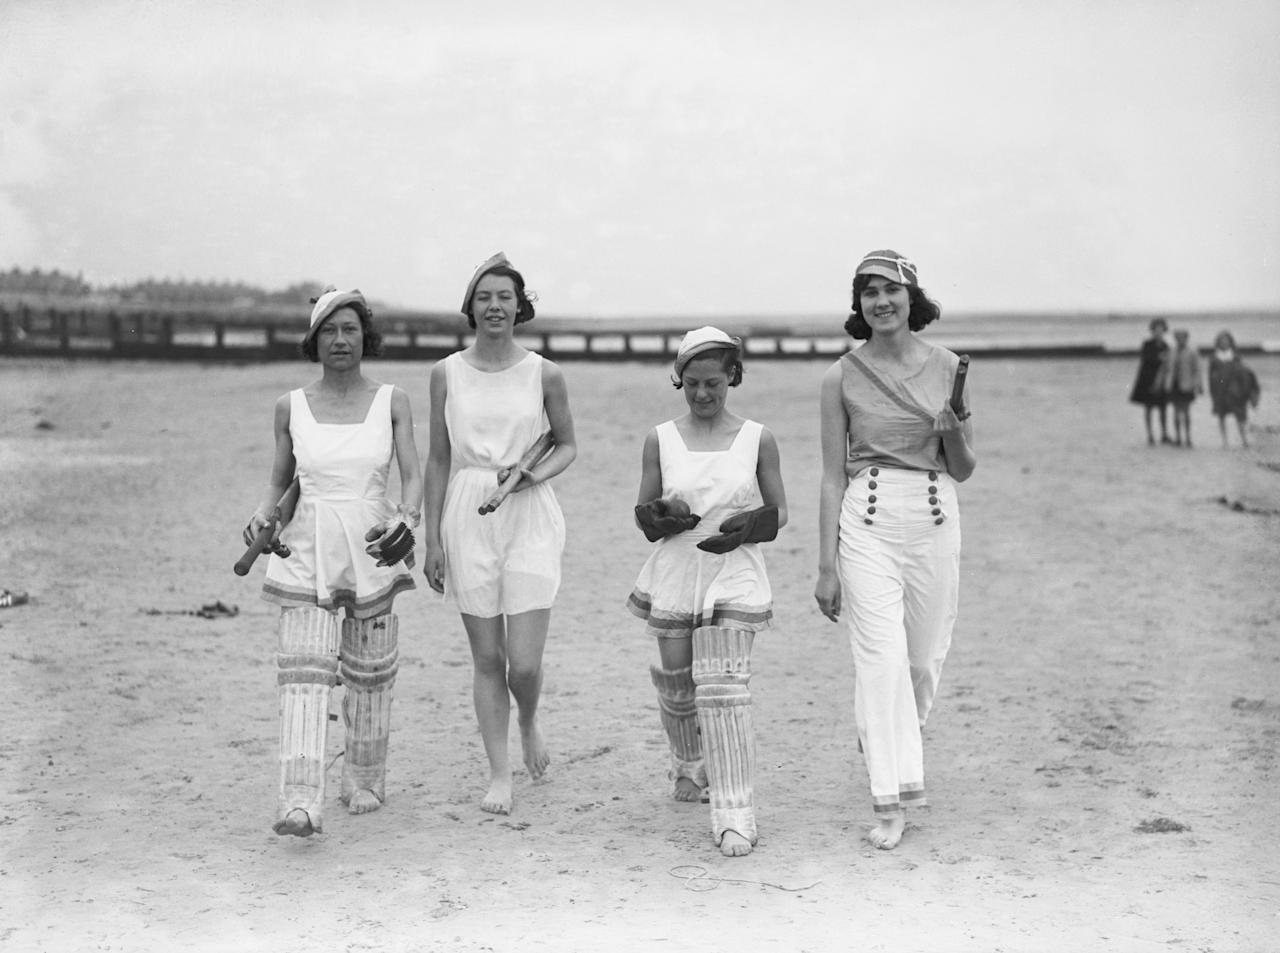 12th May 1934:  A group of women dressed for a game of cricket on the beach.  (Photo by Reg Speller/Fox Photos/Getty Images)